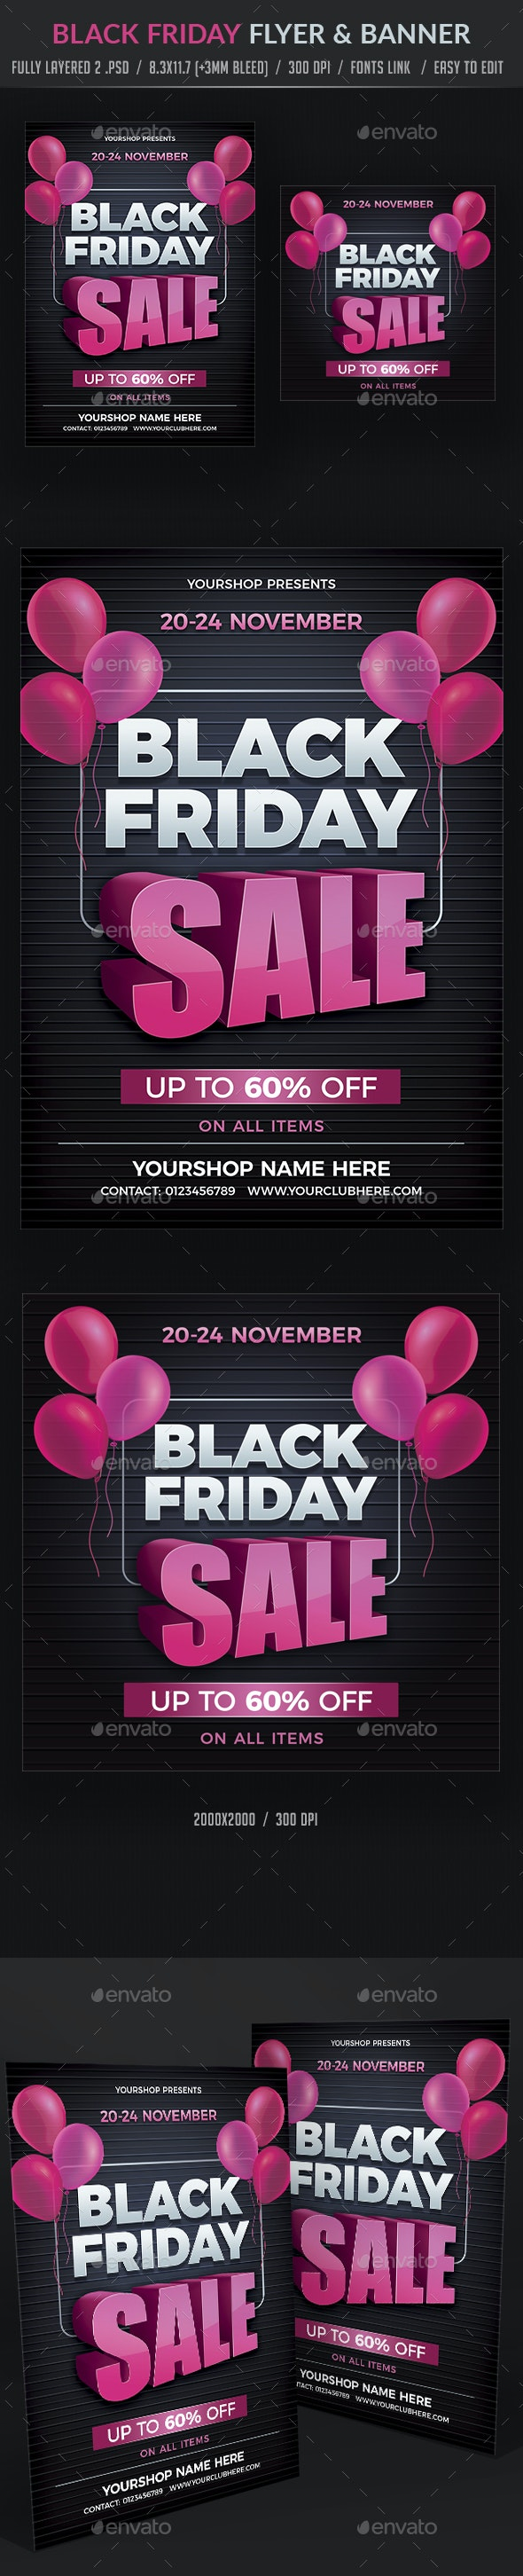 Black Friday Flyer and Banner - Flyers Print Templates